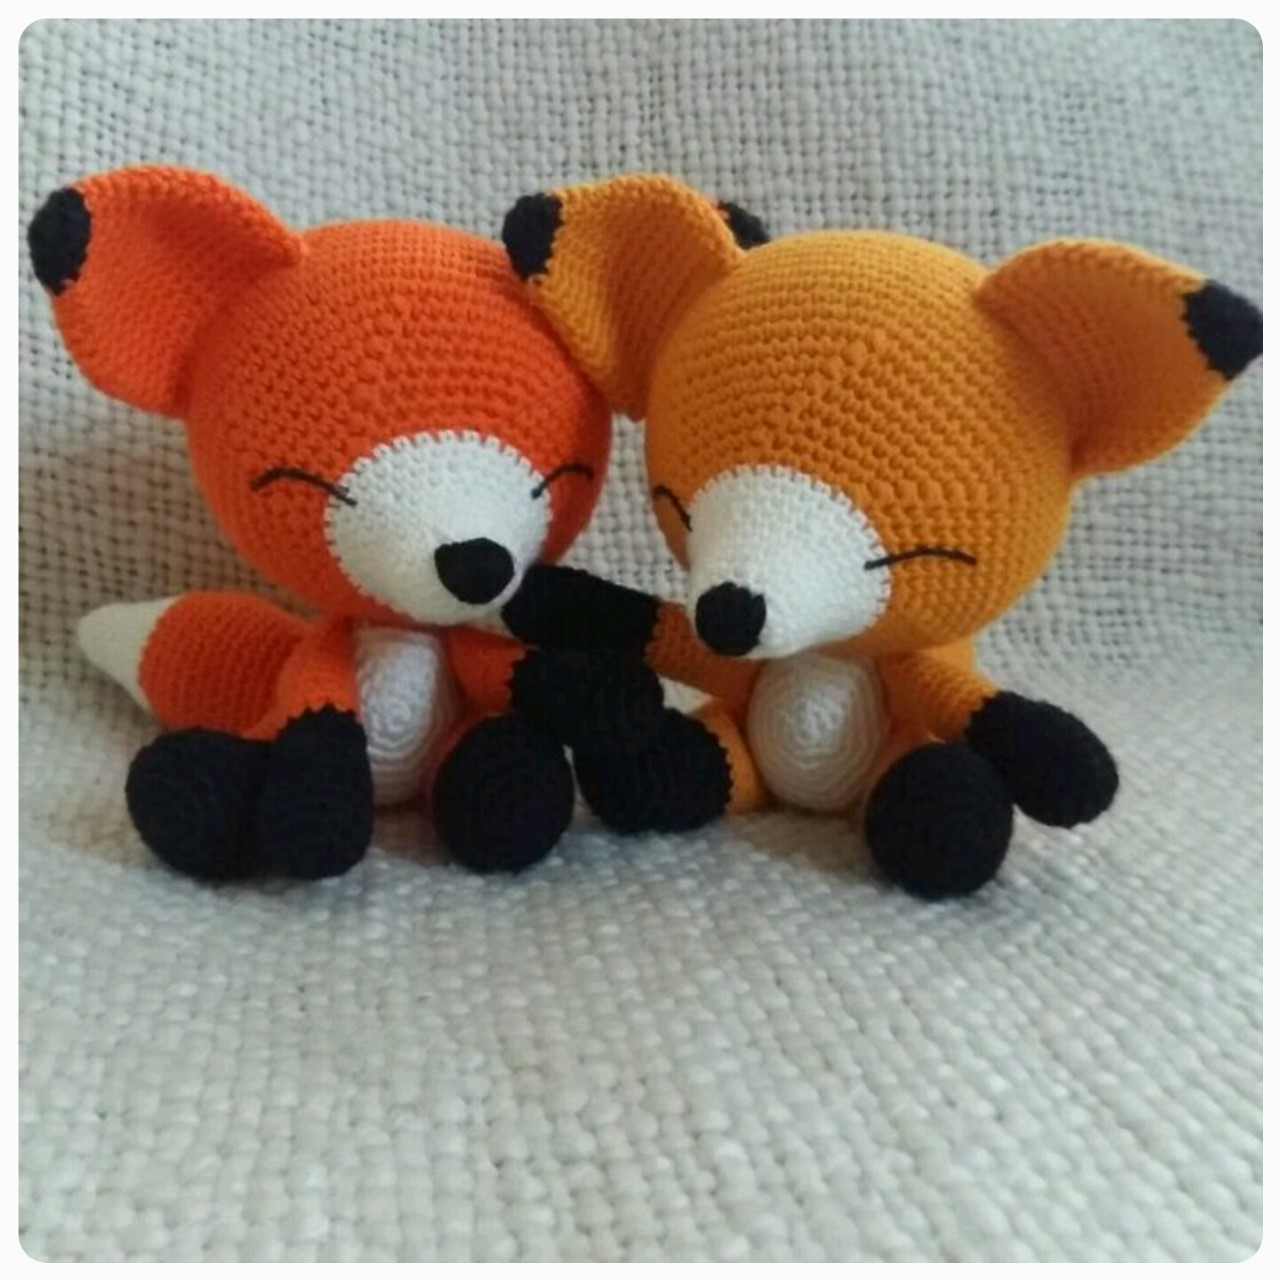 Sleepy fox amigurumi by StitchedLoveCrochet on DeviantArt | 1280x1280